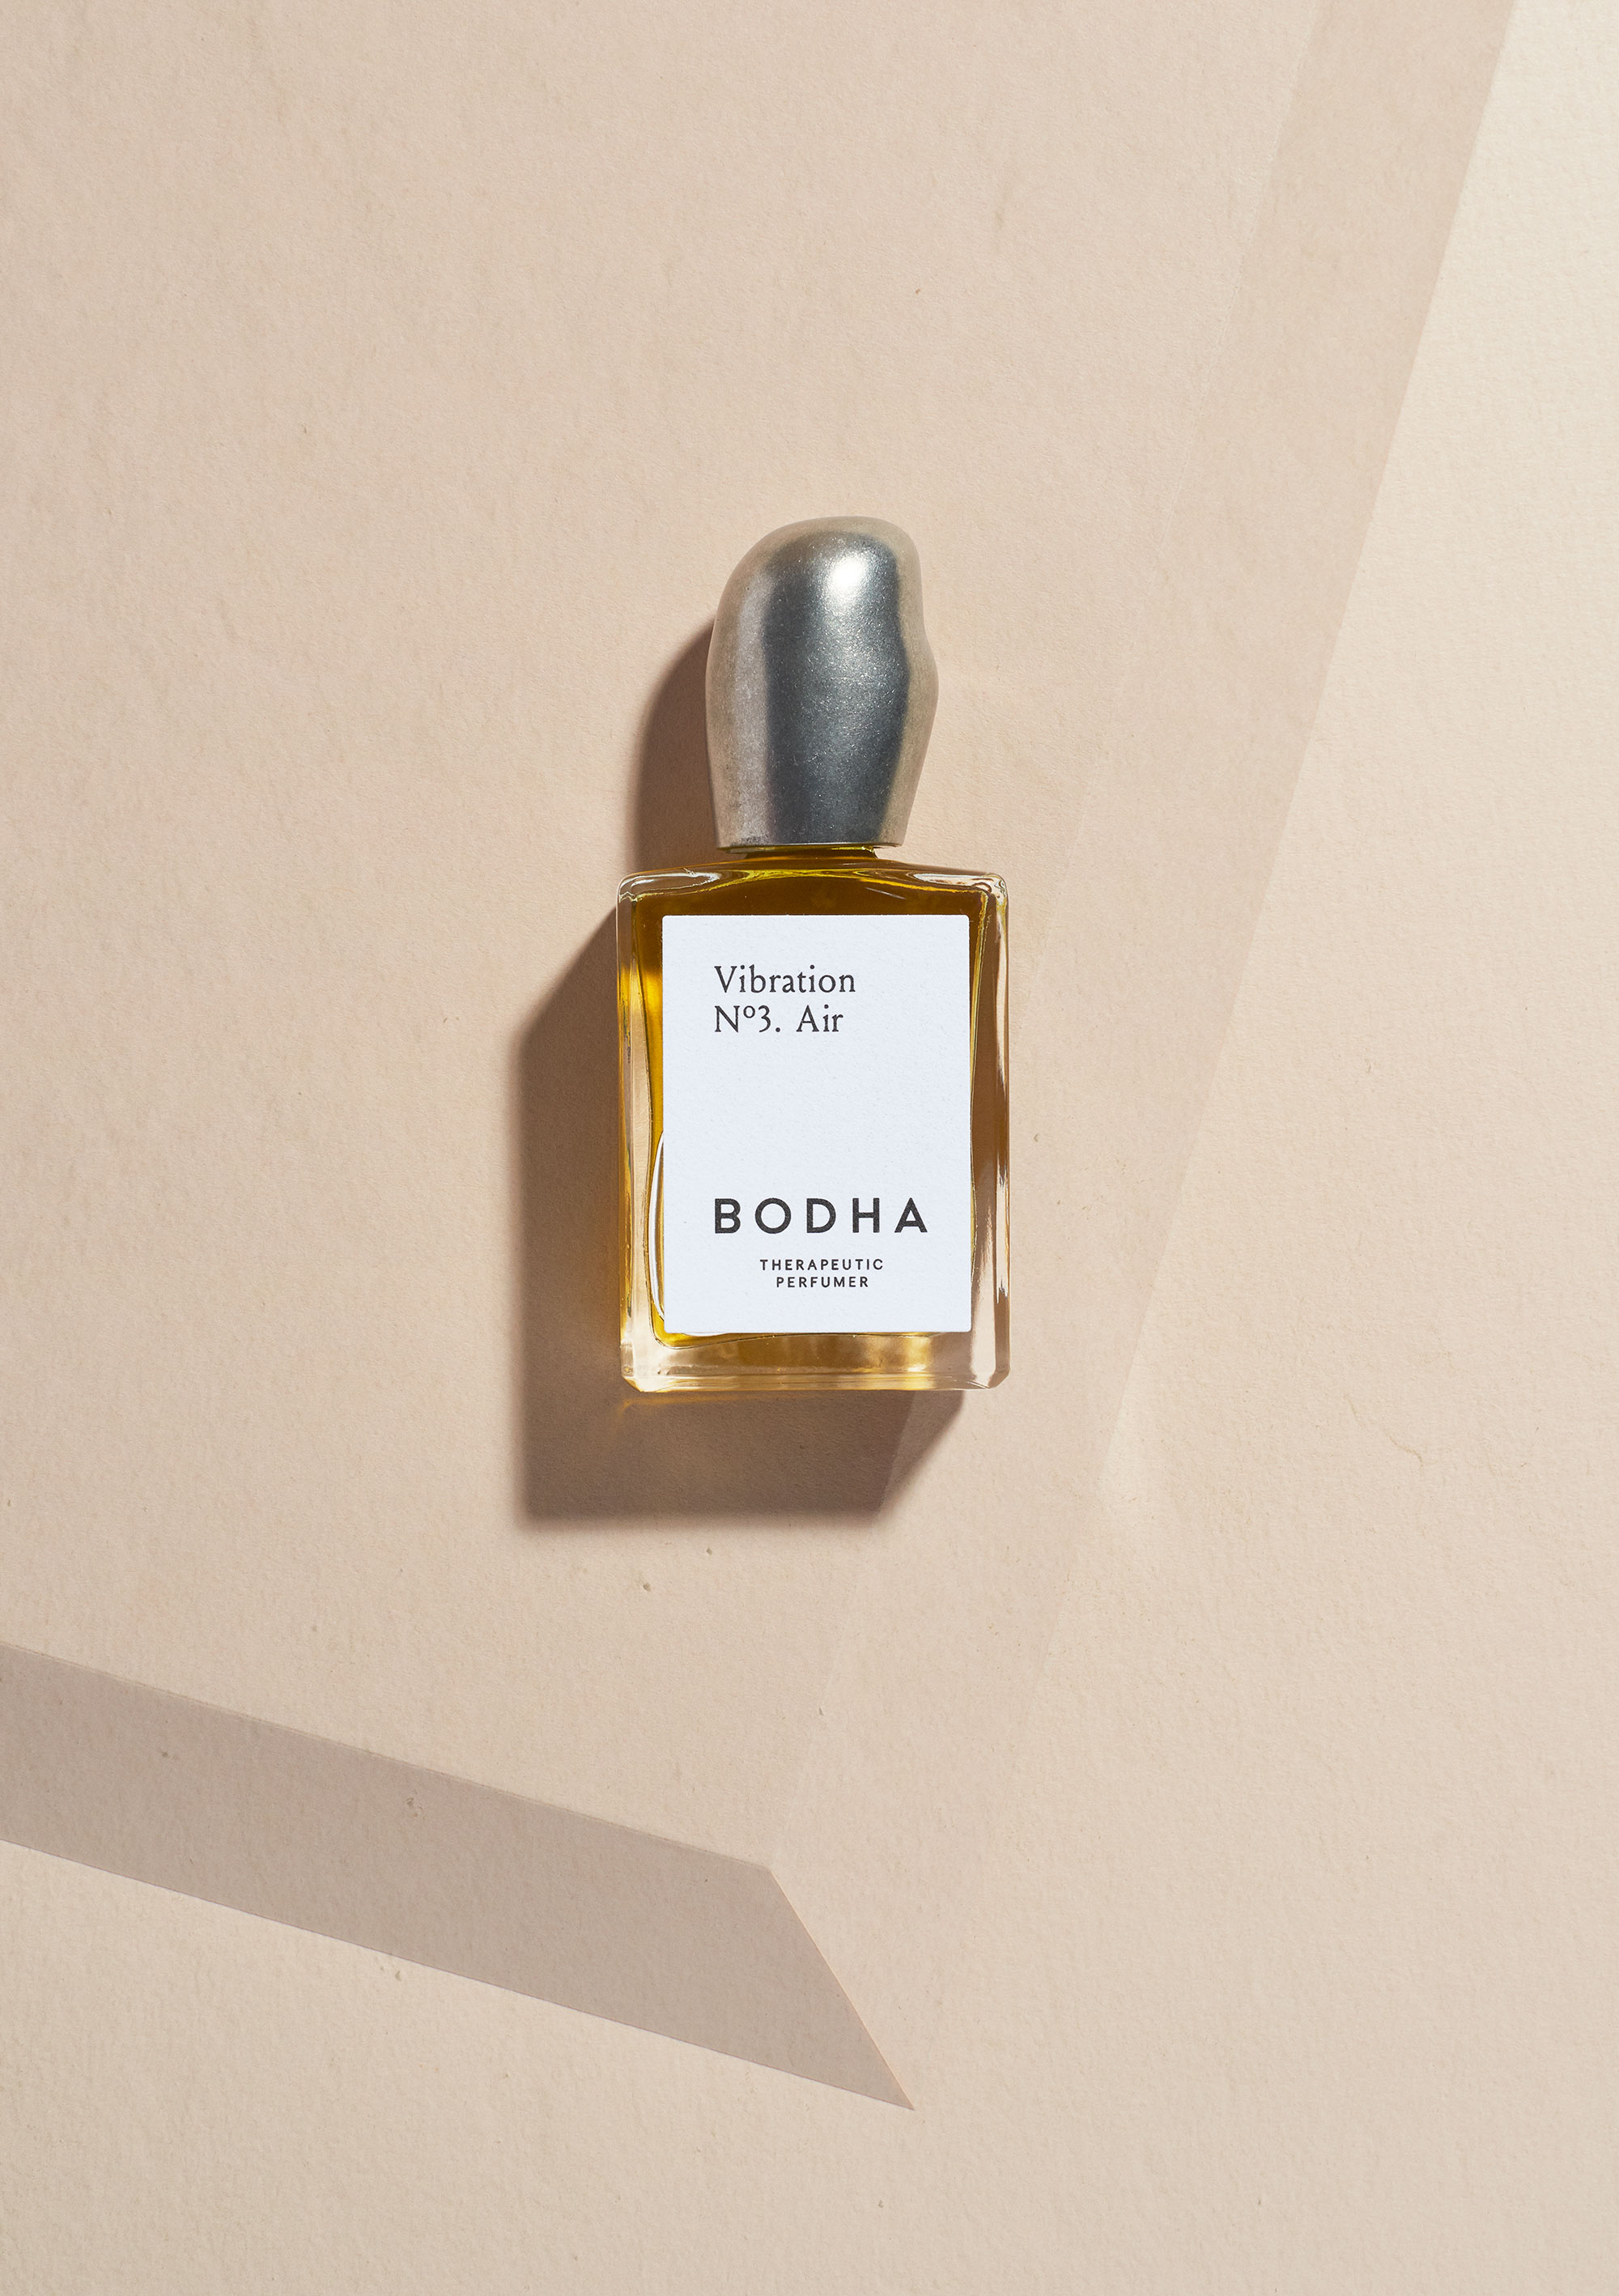 BODHA Vibration Perfume - Nº3 Air